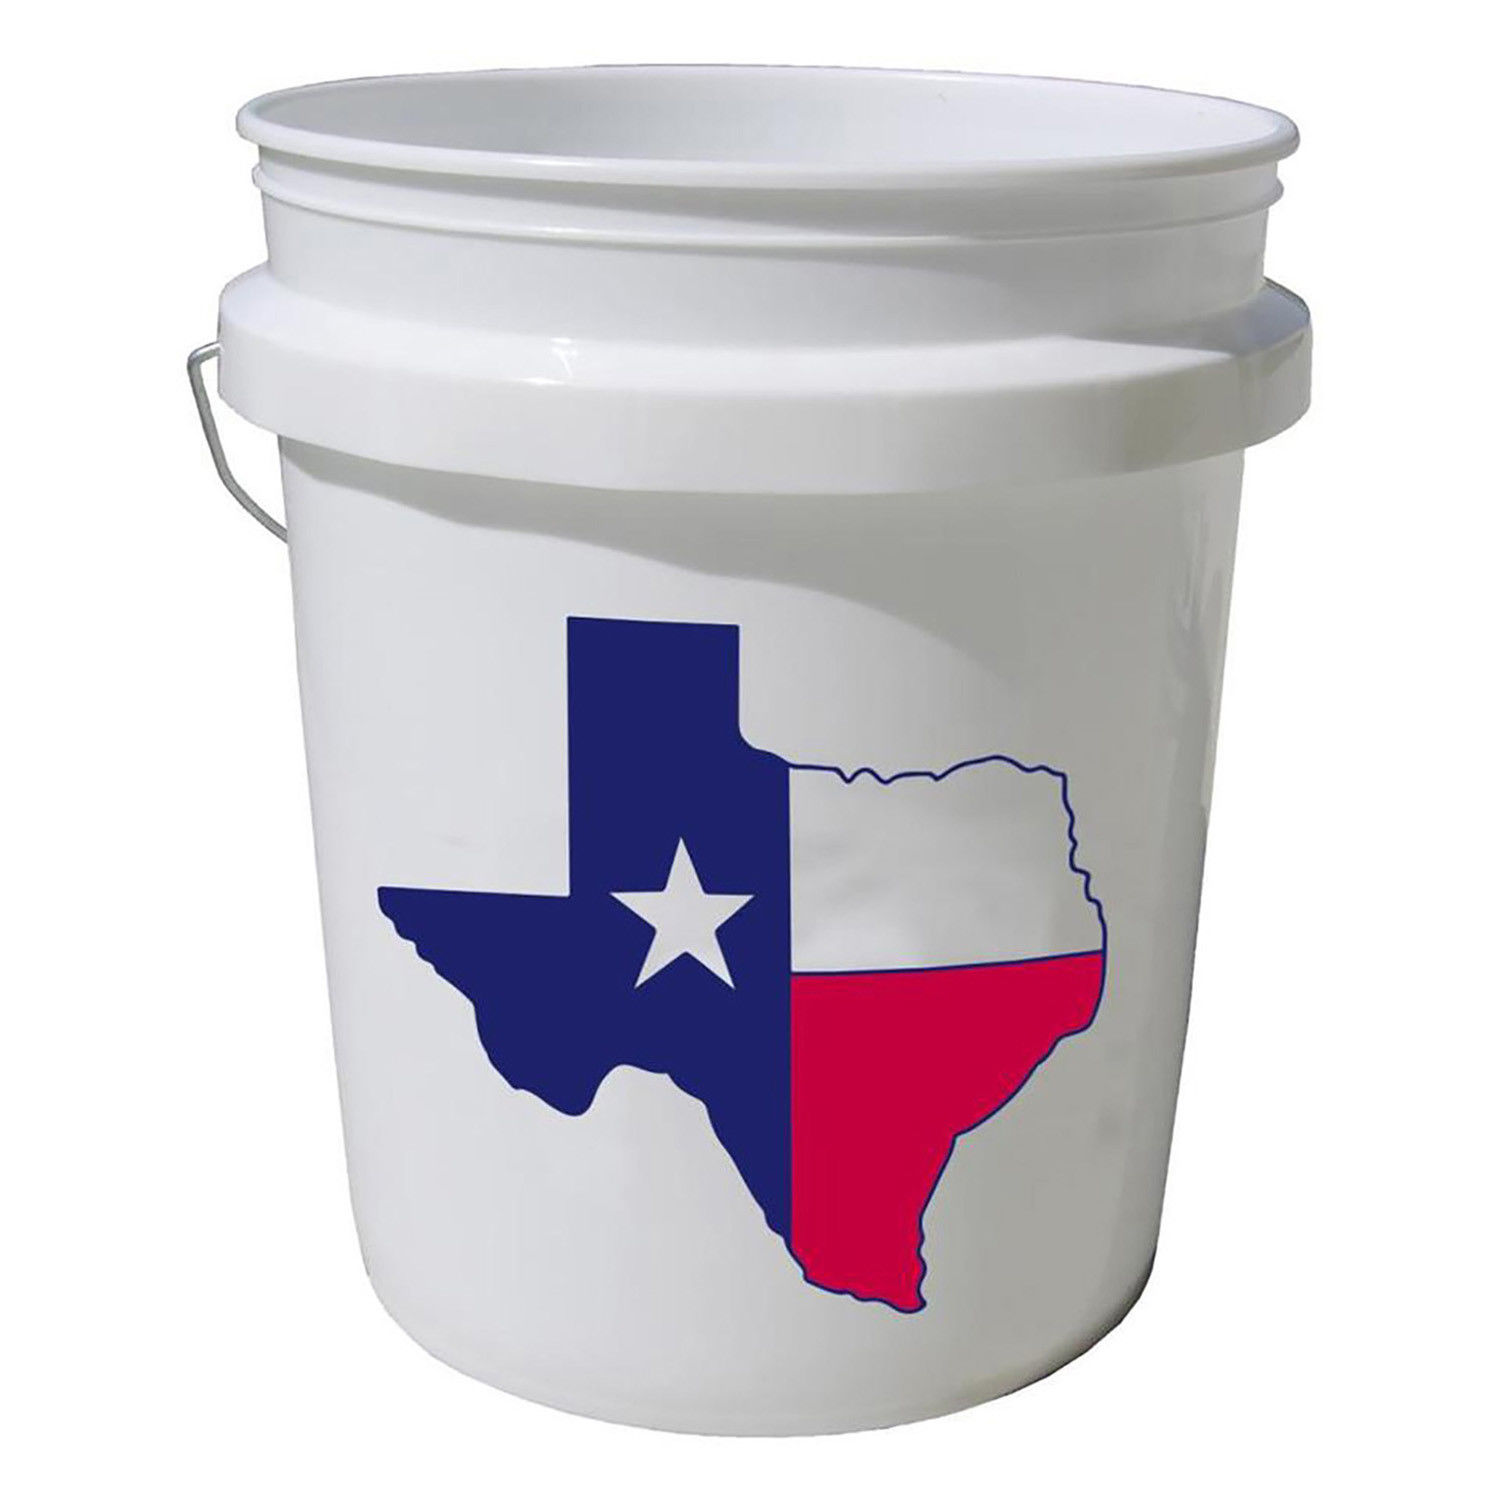 COMMERCIAL FOOD GRADE BUCKET 5 Gal All Purpose Texas Star Paint Storage Plastic 1